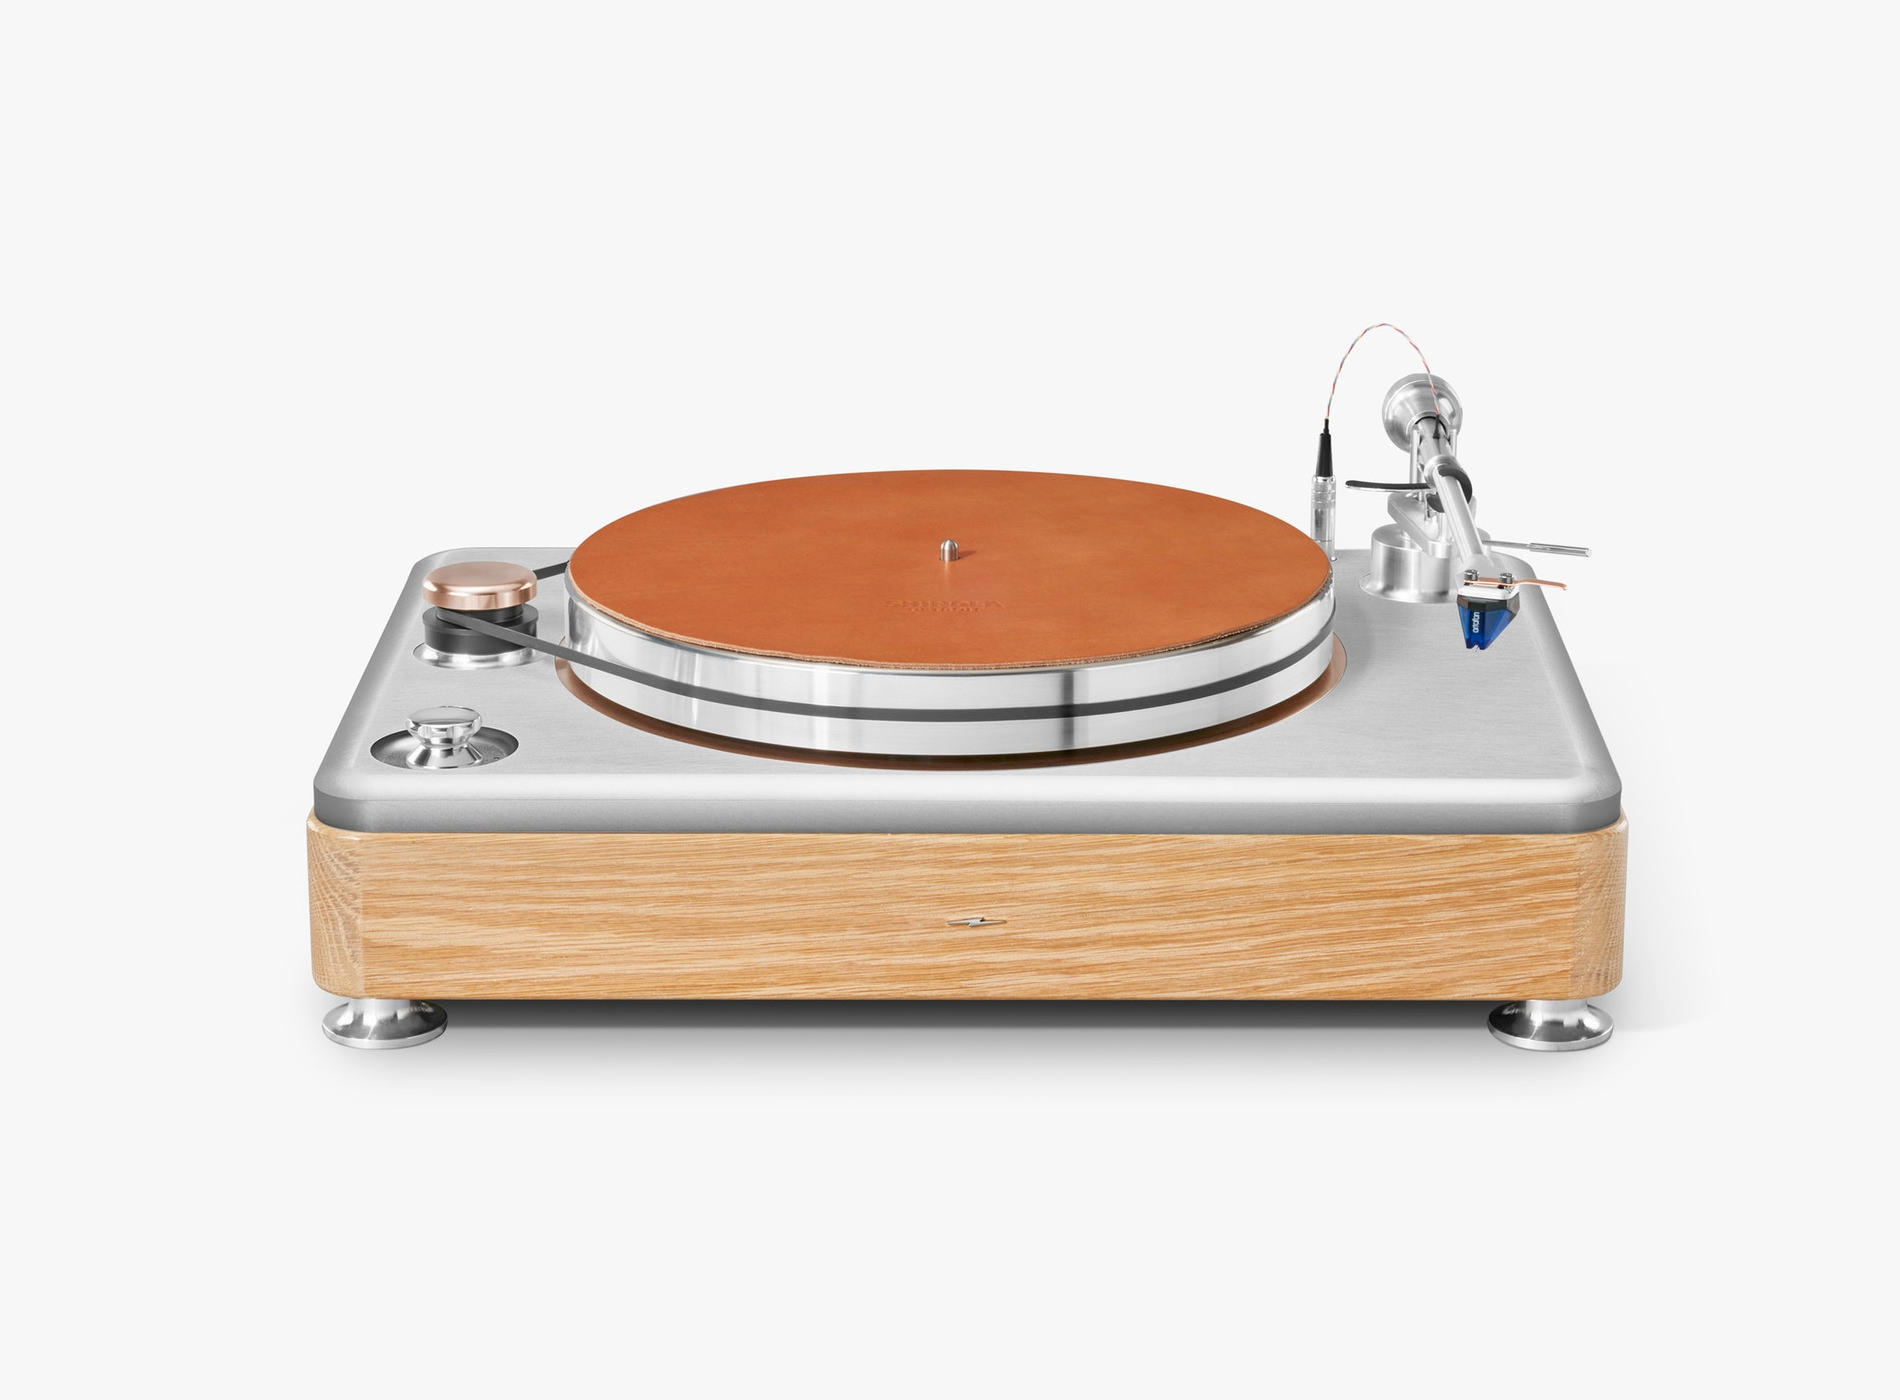 Guide Noël 2019 Idées Cadeaux Shinola Platine Disque Turntable Runwell